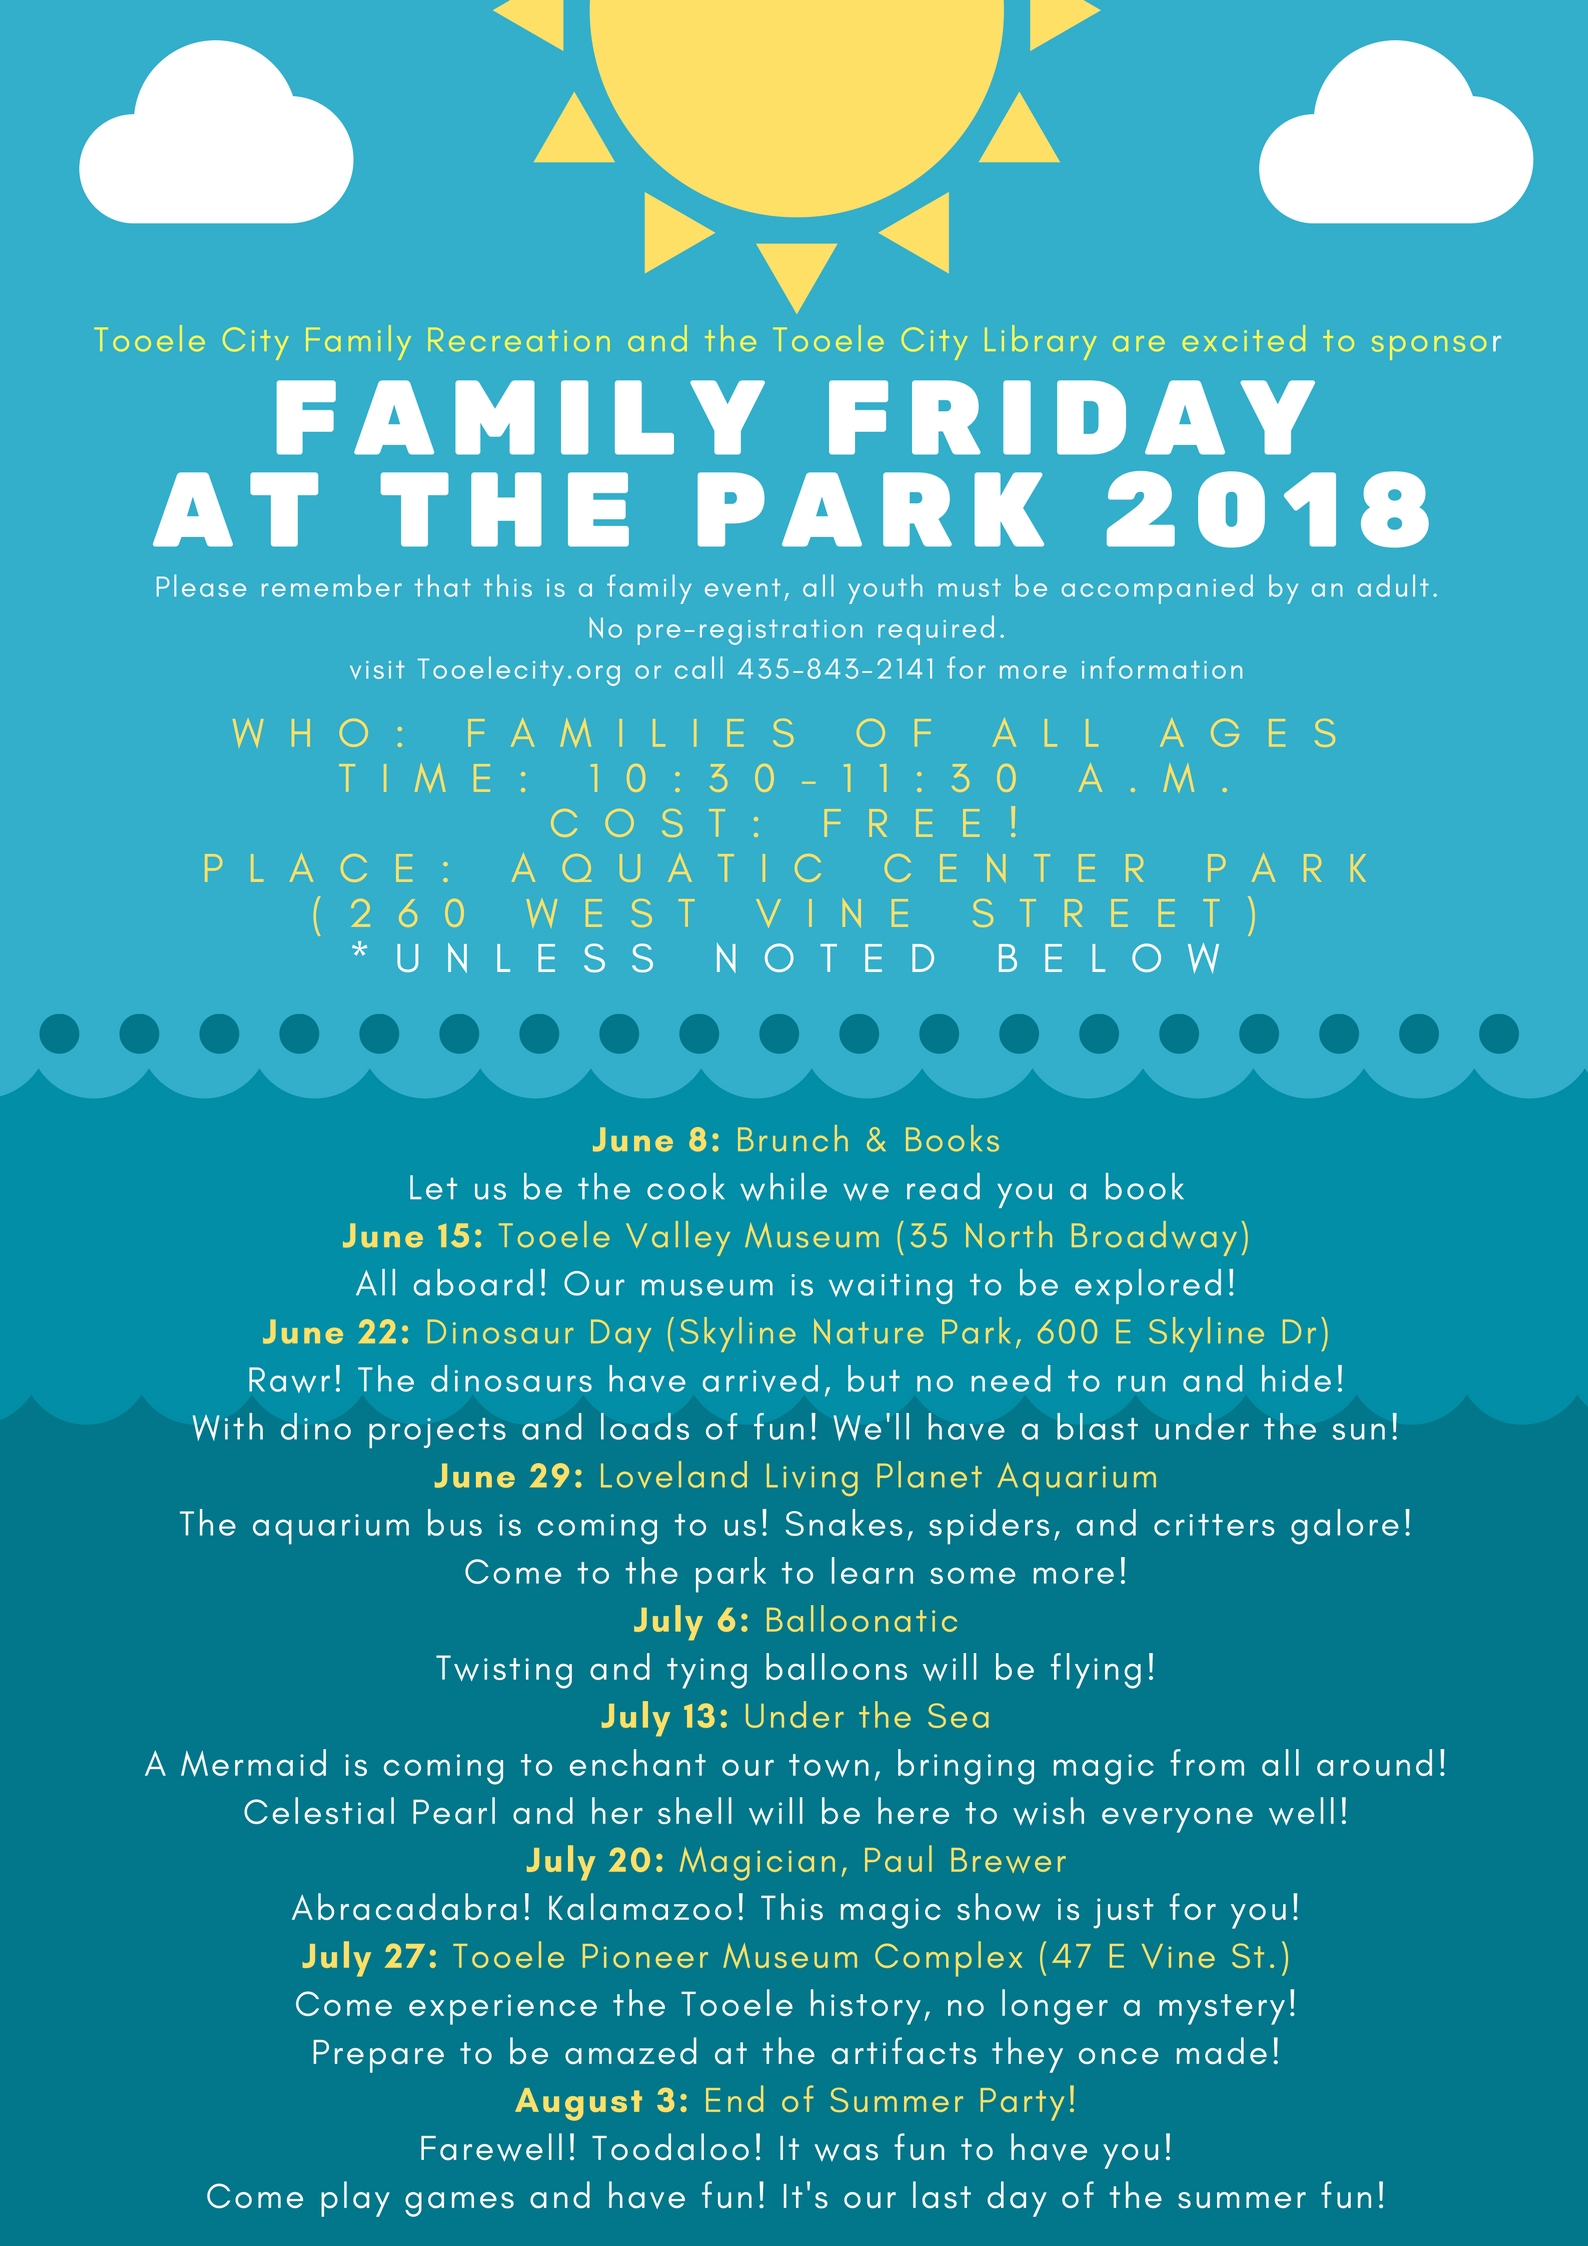 Friday at the Park:  Loveland Living Planet Aquarium @ Aquatic Center Park | Tooele | Utah | United States